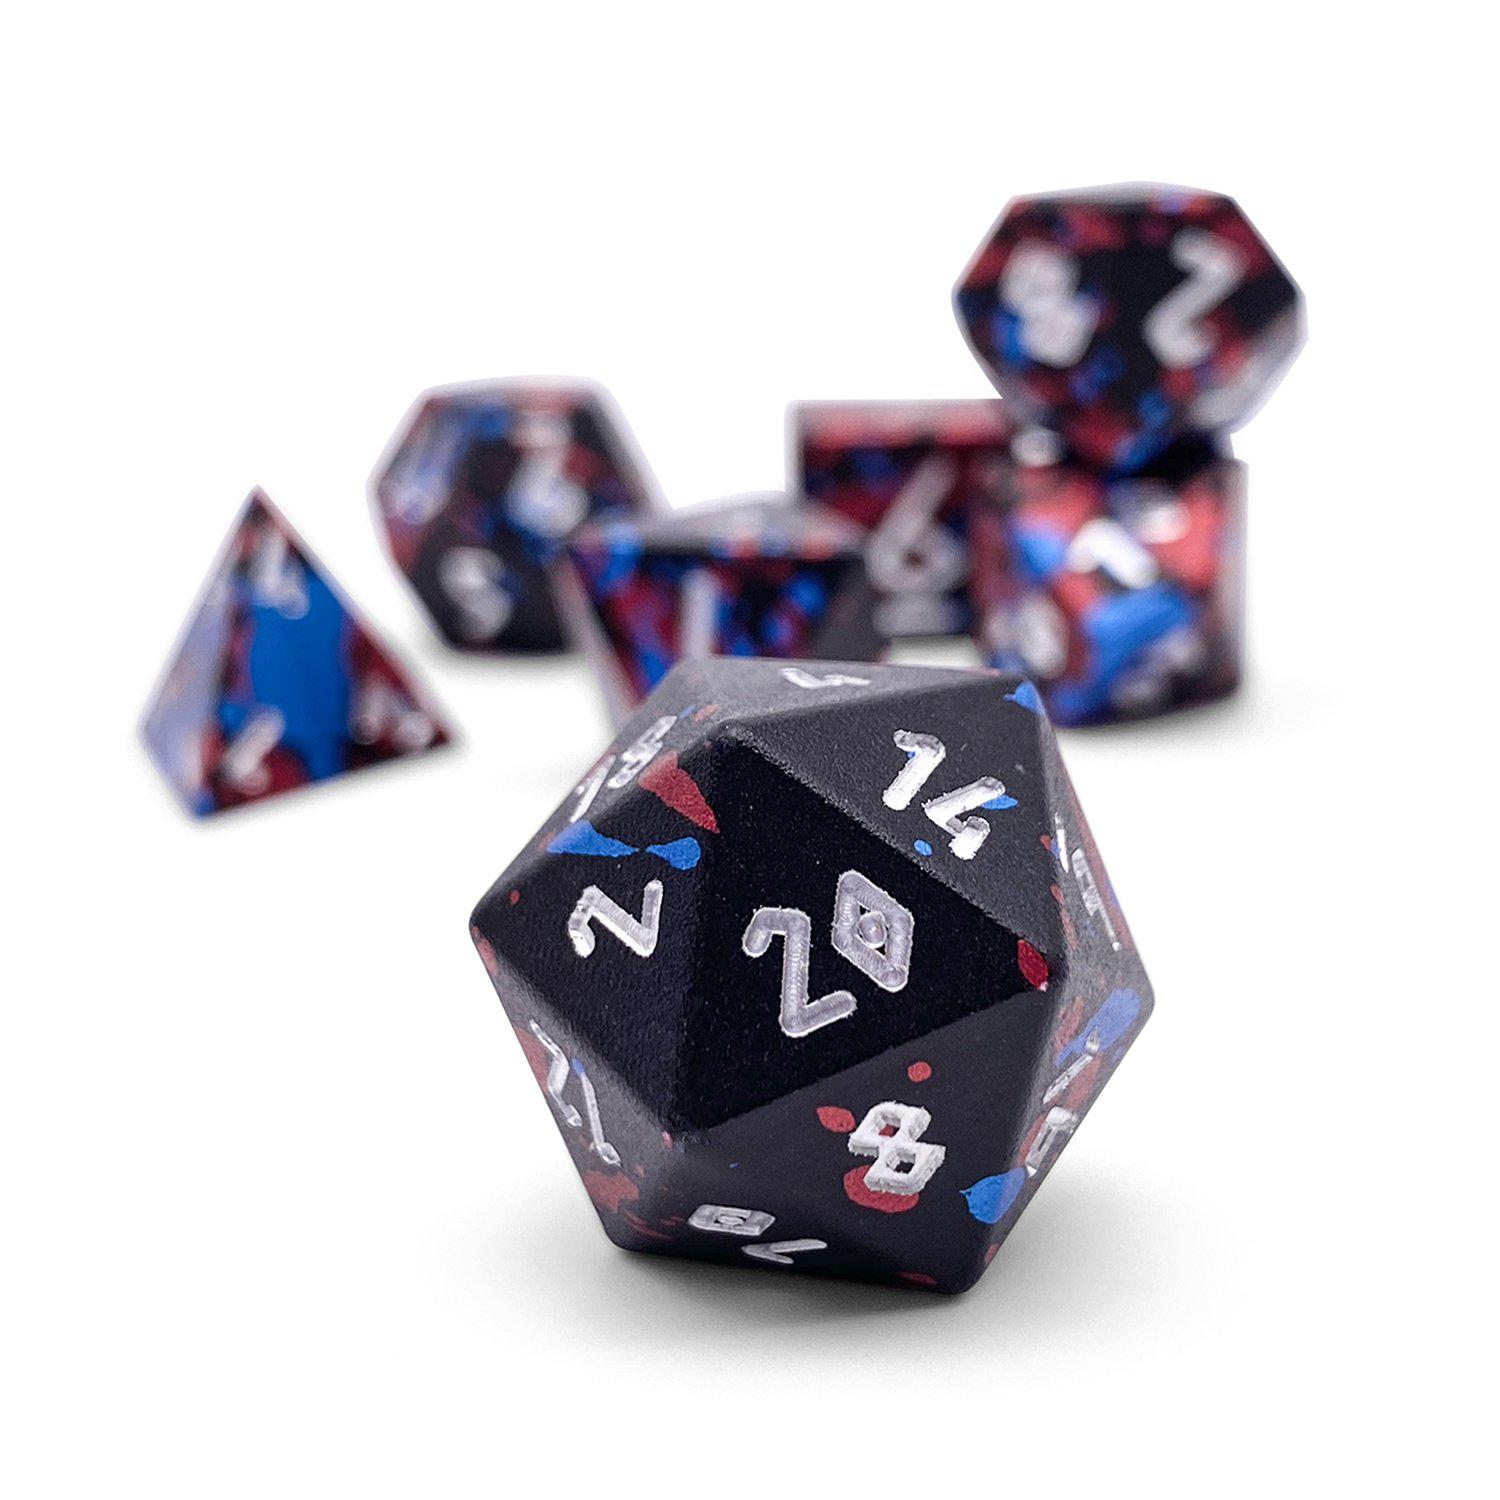 Dark Circus - Wondrous Dice Set of 7 RPG Dice by Norse Foundry Precision Polyhedral Dice Set